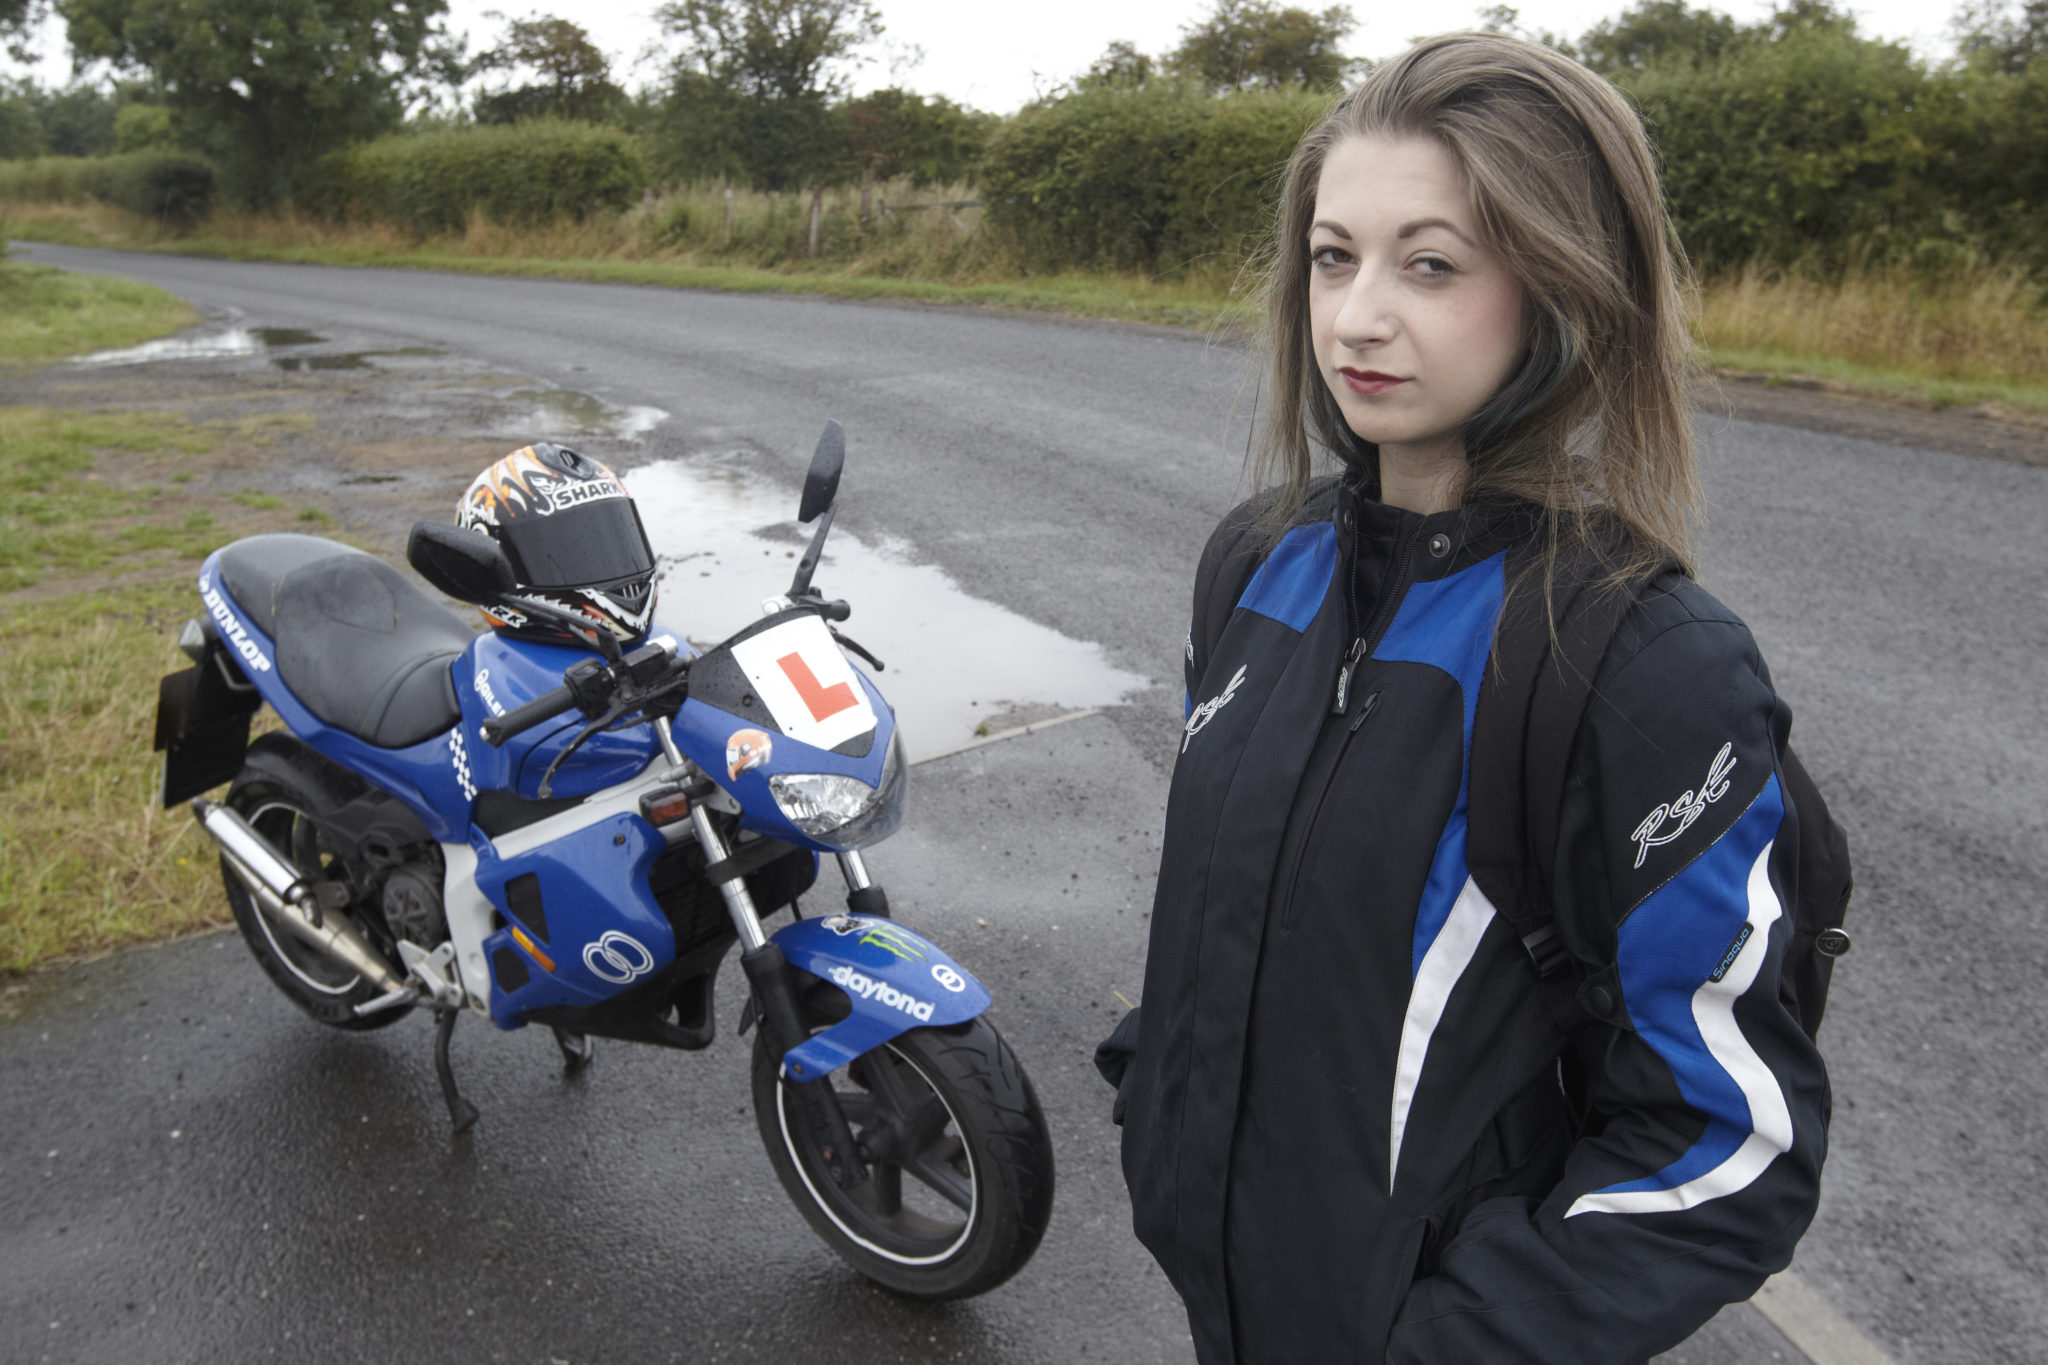 Compensation for young woman who fell from motorcycle after farmer left mud on road